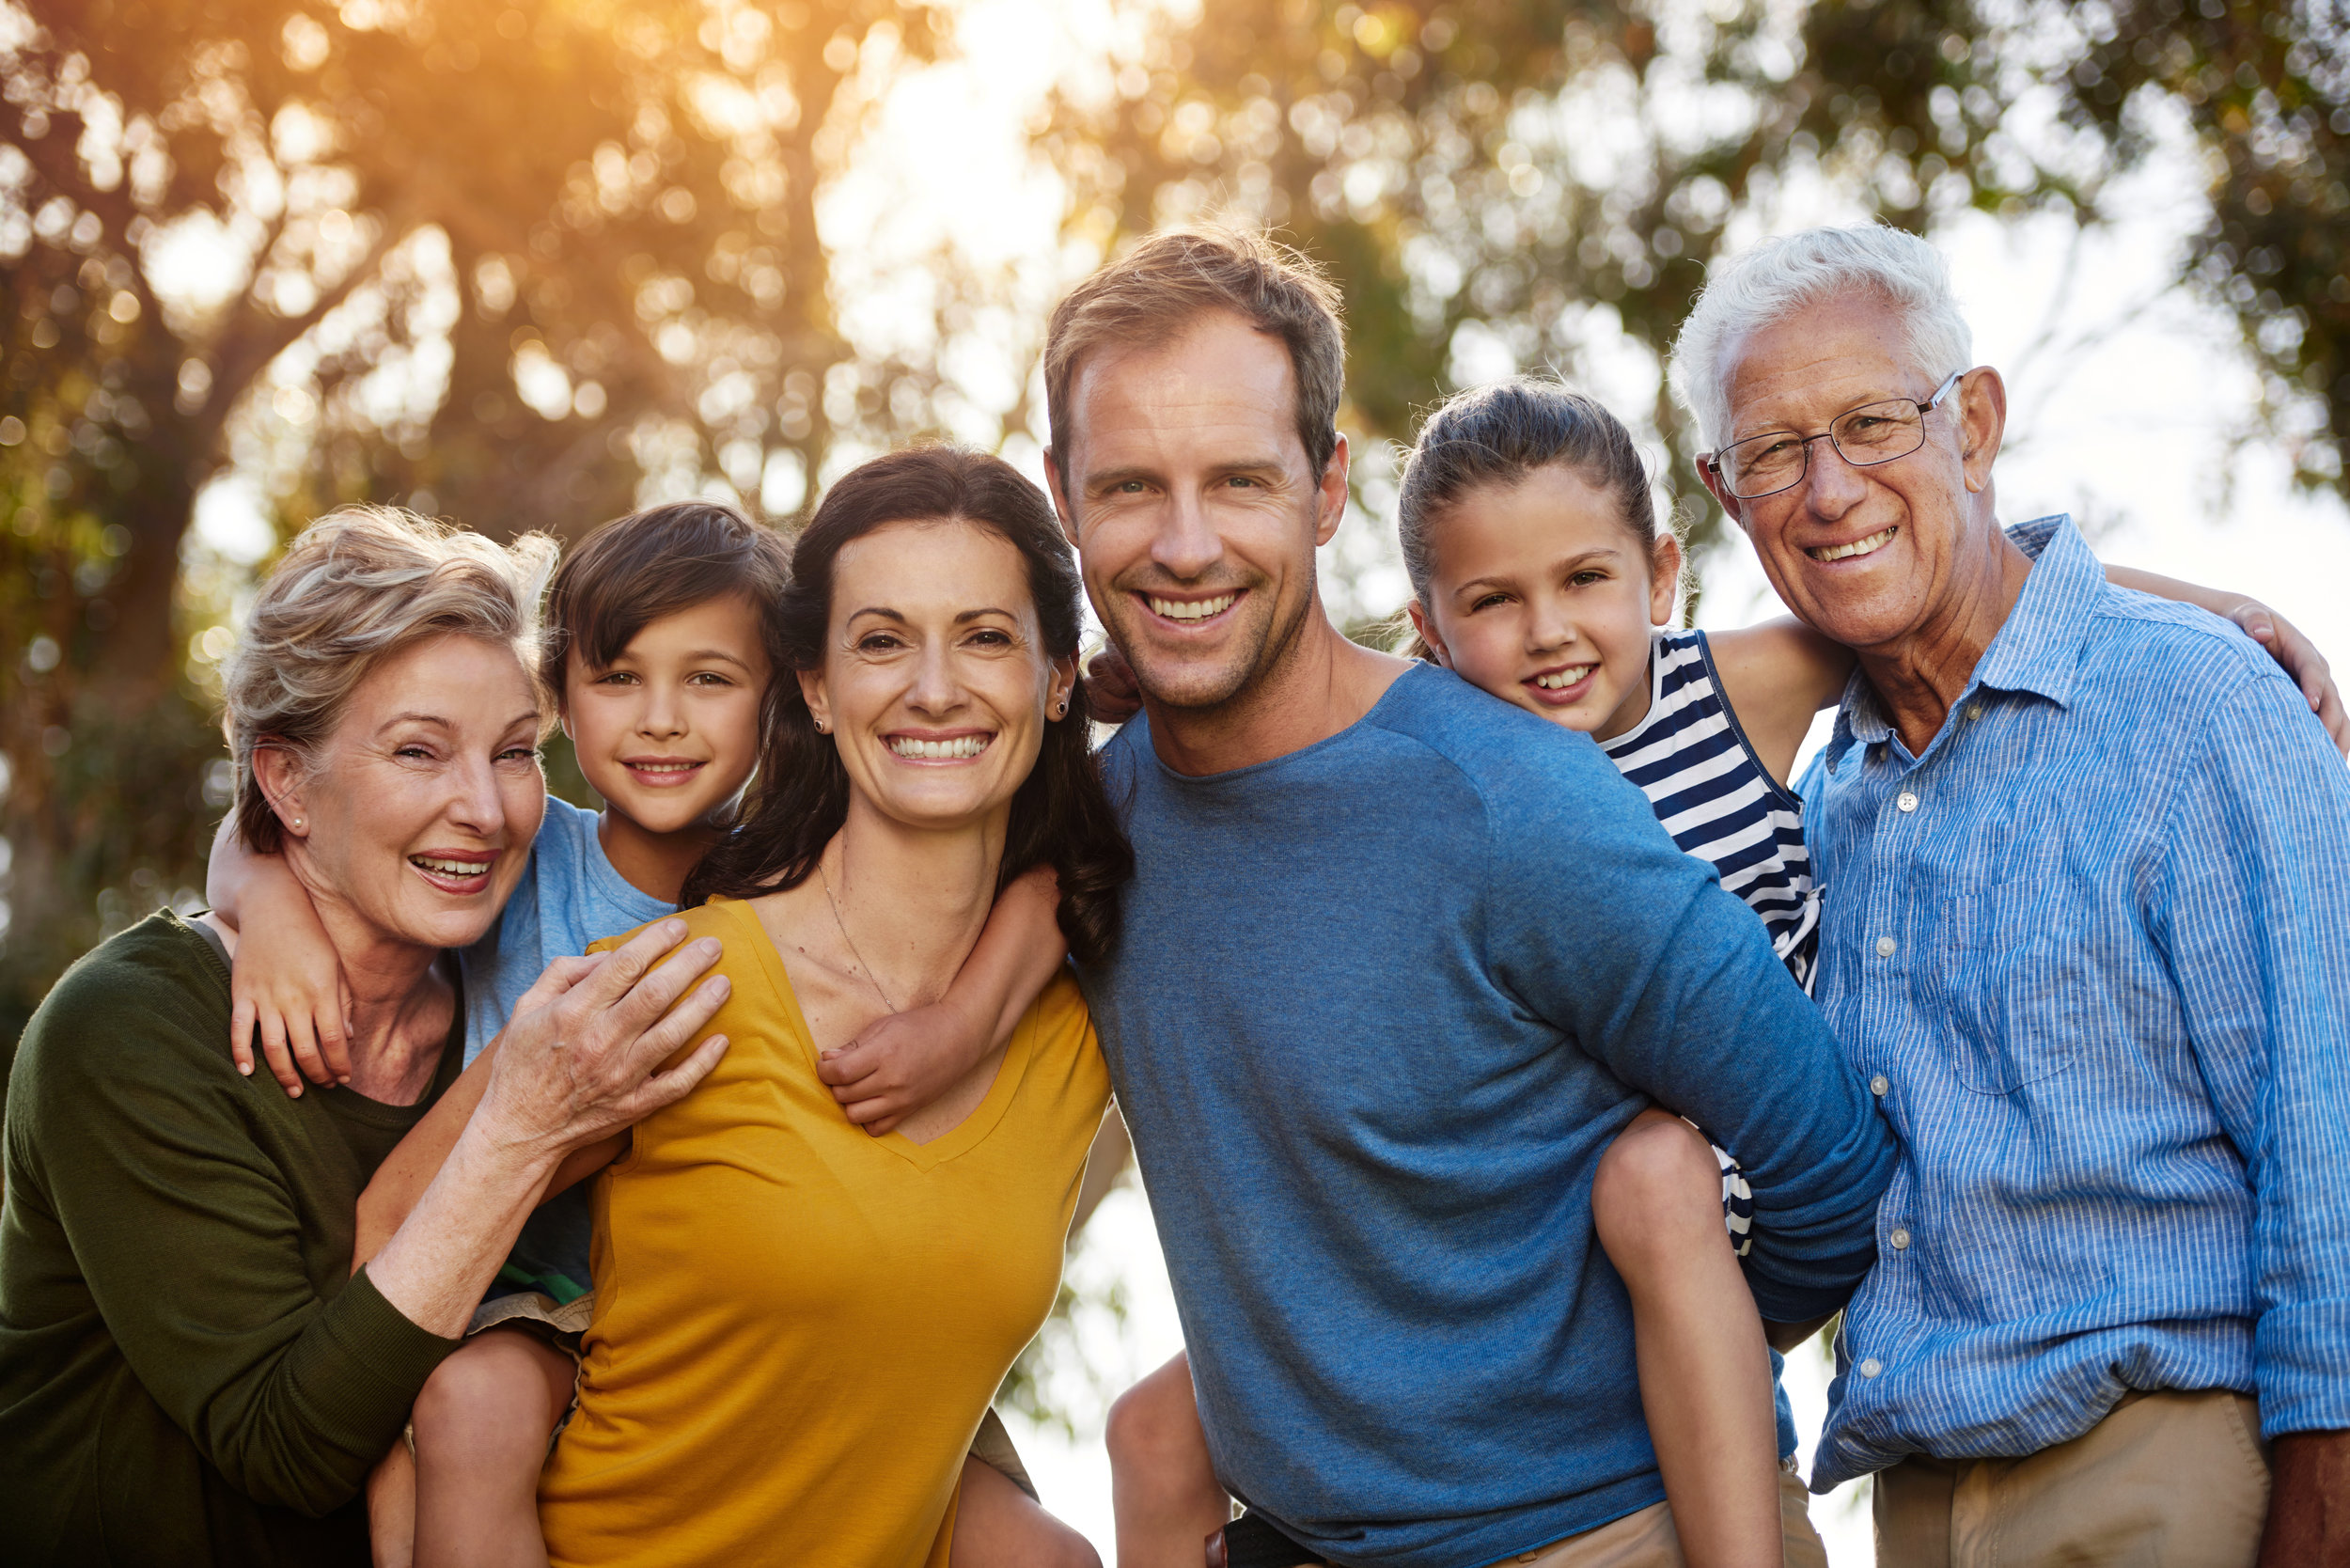 Estate Planning - Proper estate planning is one of the most important steps you can take to protect yourself and your loved ones. Our sophisticated estate planning techniques provide our clients peace of mind.